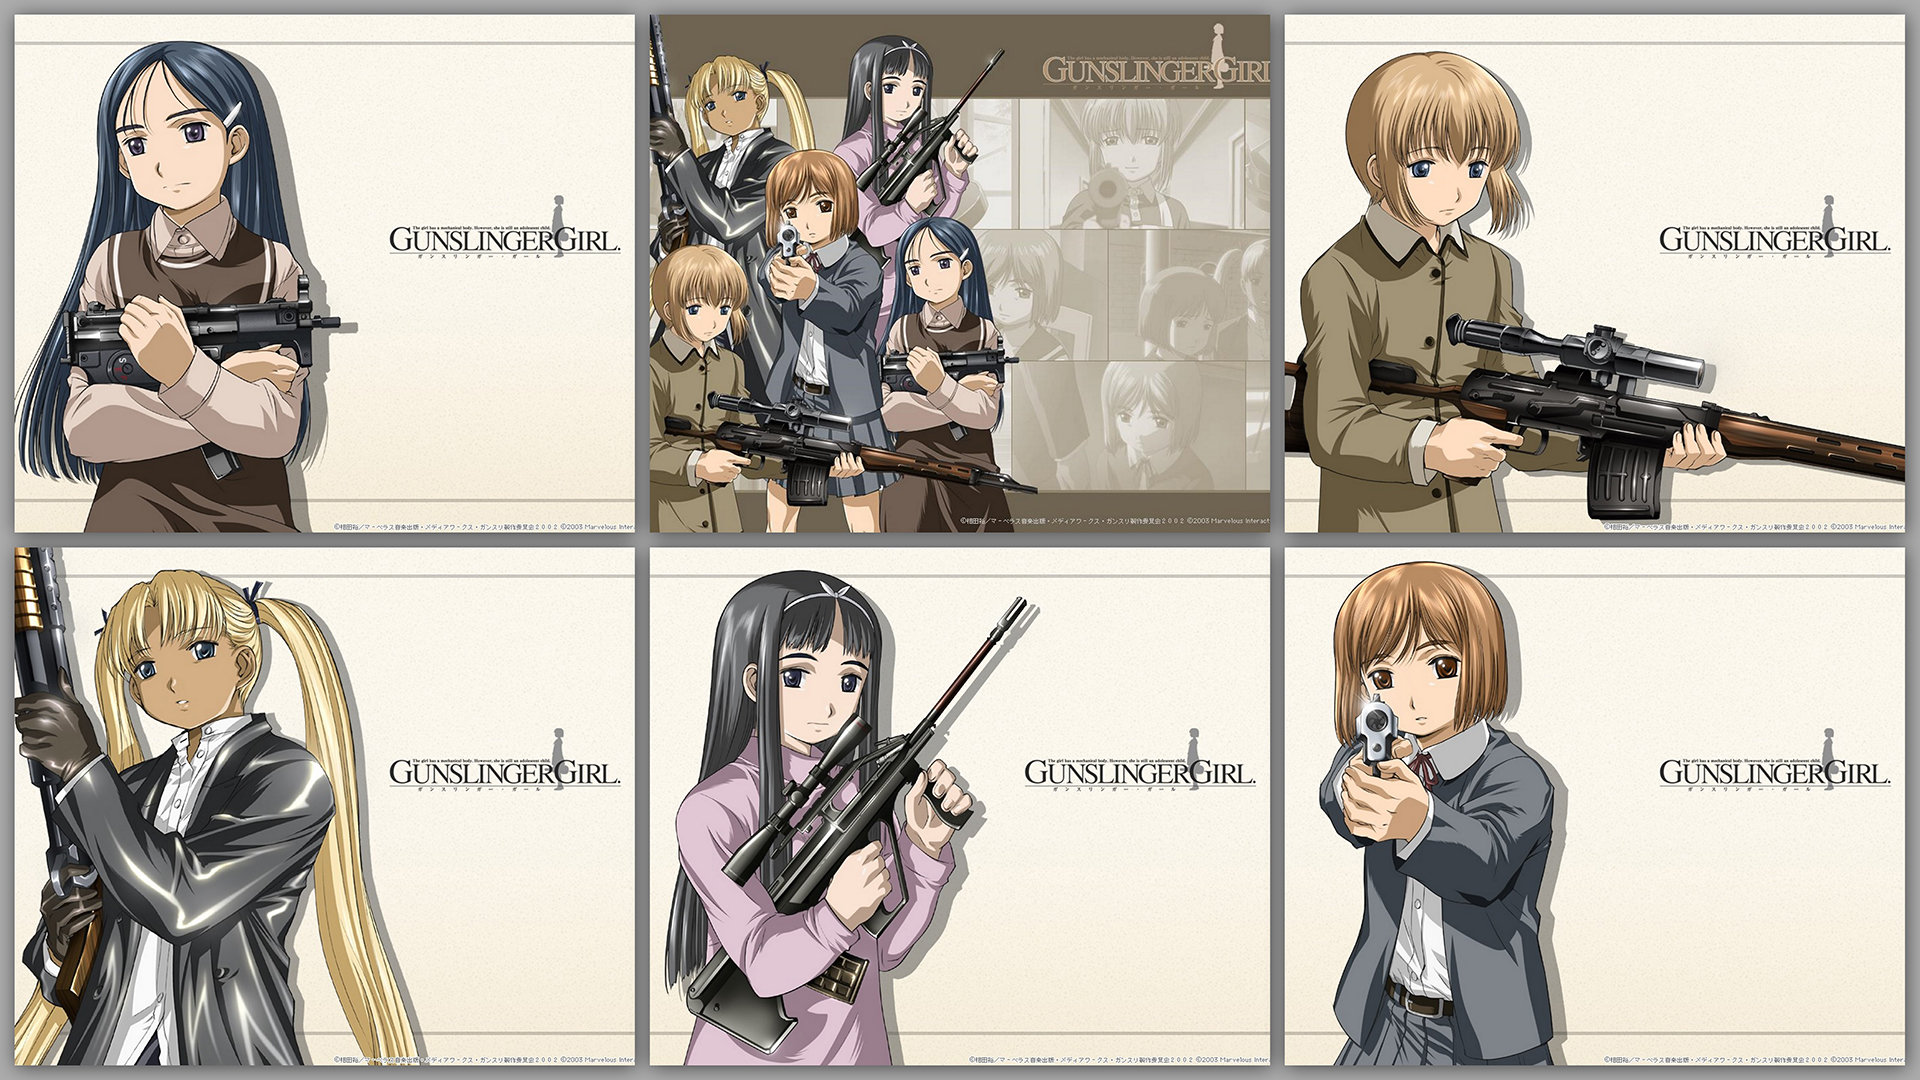 Download full hd 1920x1080 Gunslinger Girl PC wallpaper ID:357736 for free